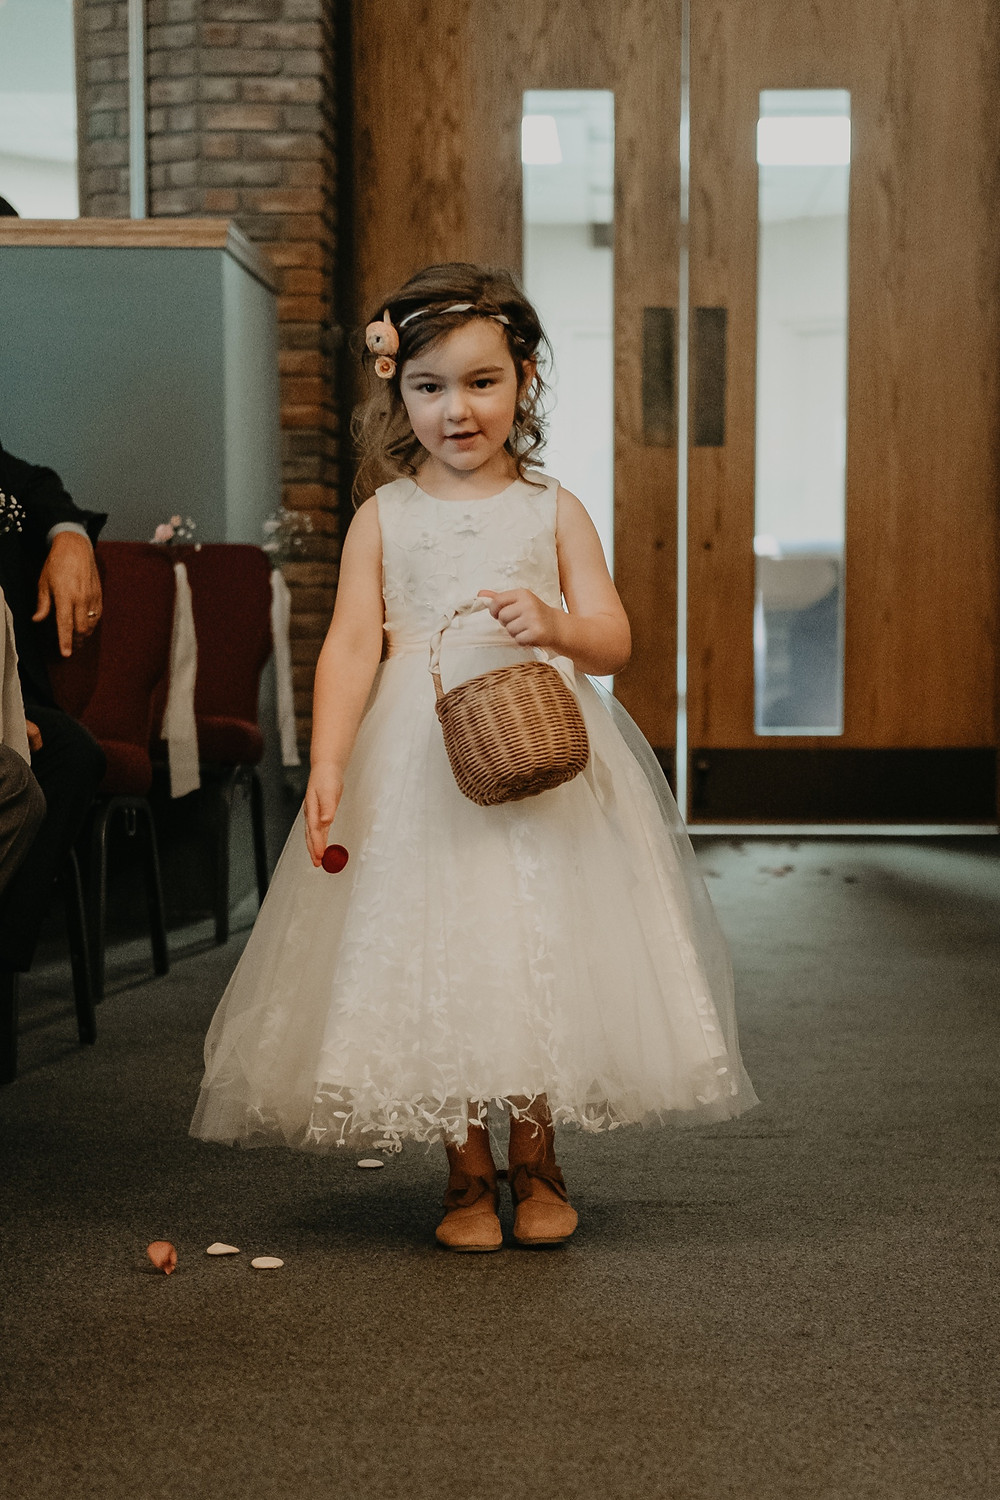 Flower girl at church wedding. Photographed by Nicole Leanne Photography.